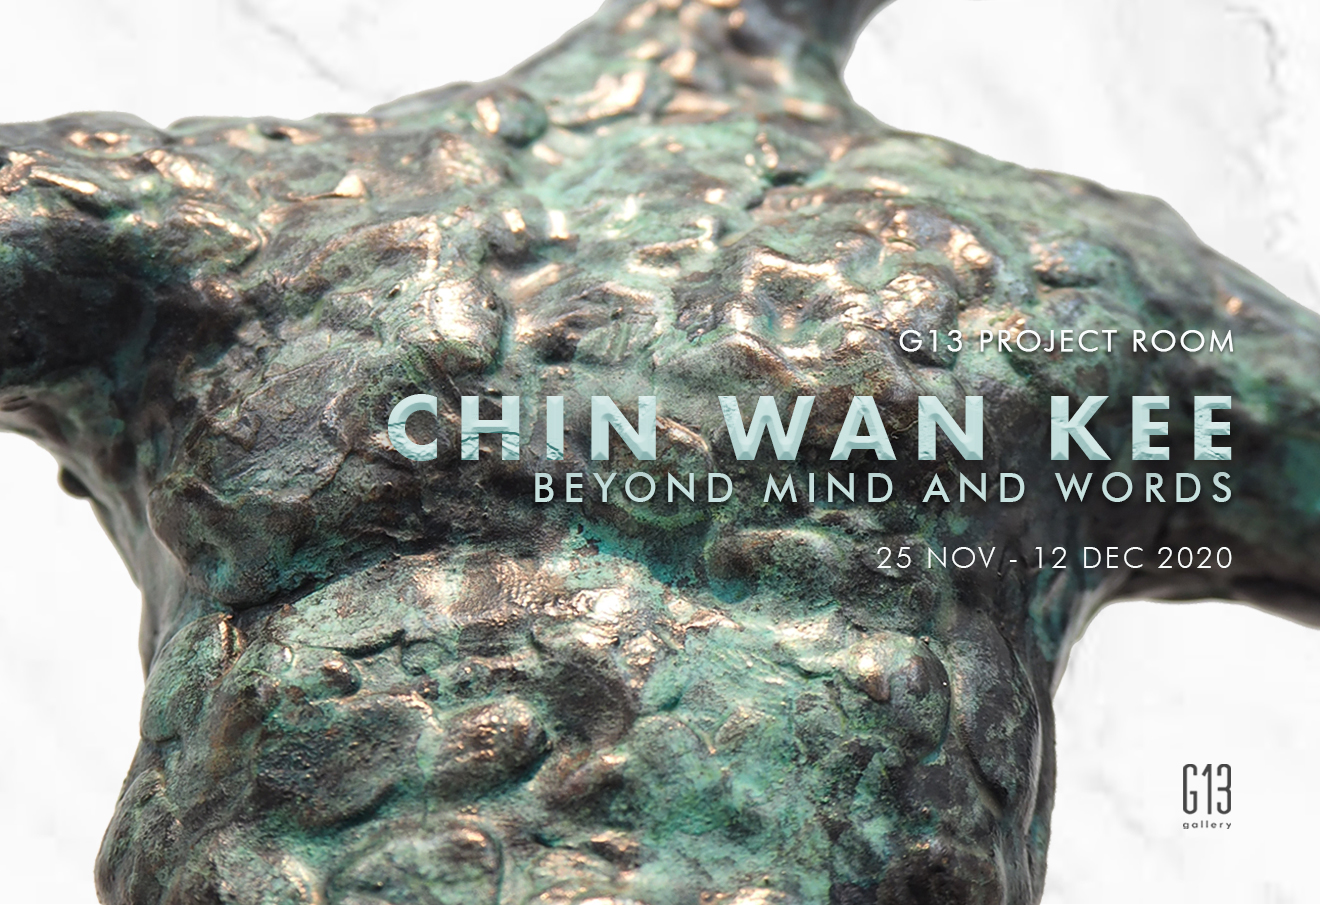 G13 PROJECT ROOM : BEYOND MIND AND WORDS BY CHIN WAN KEE